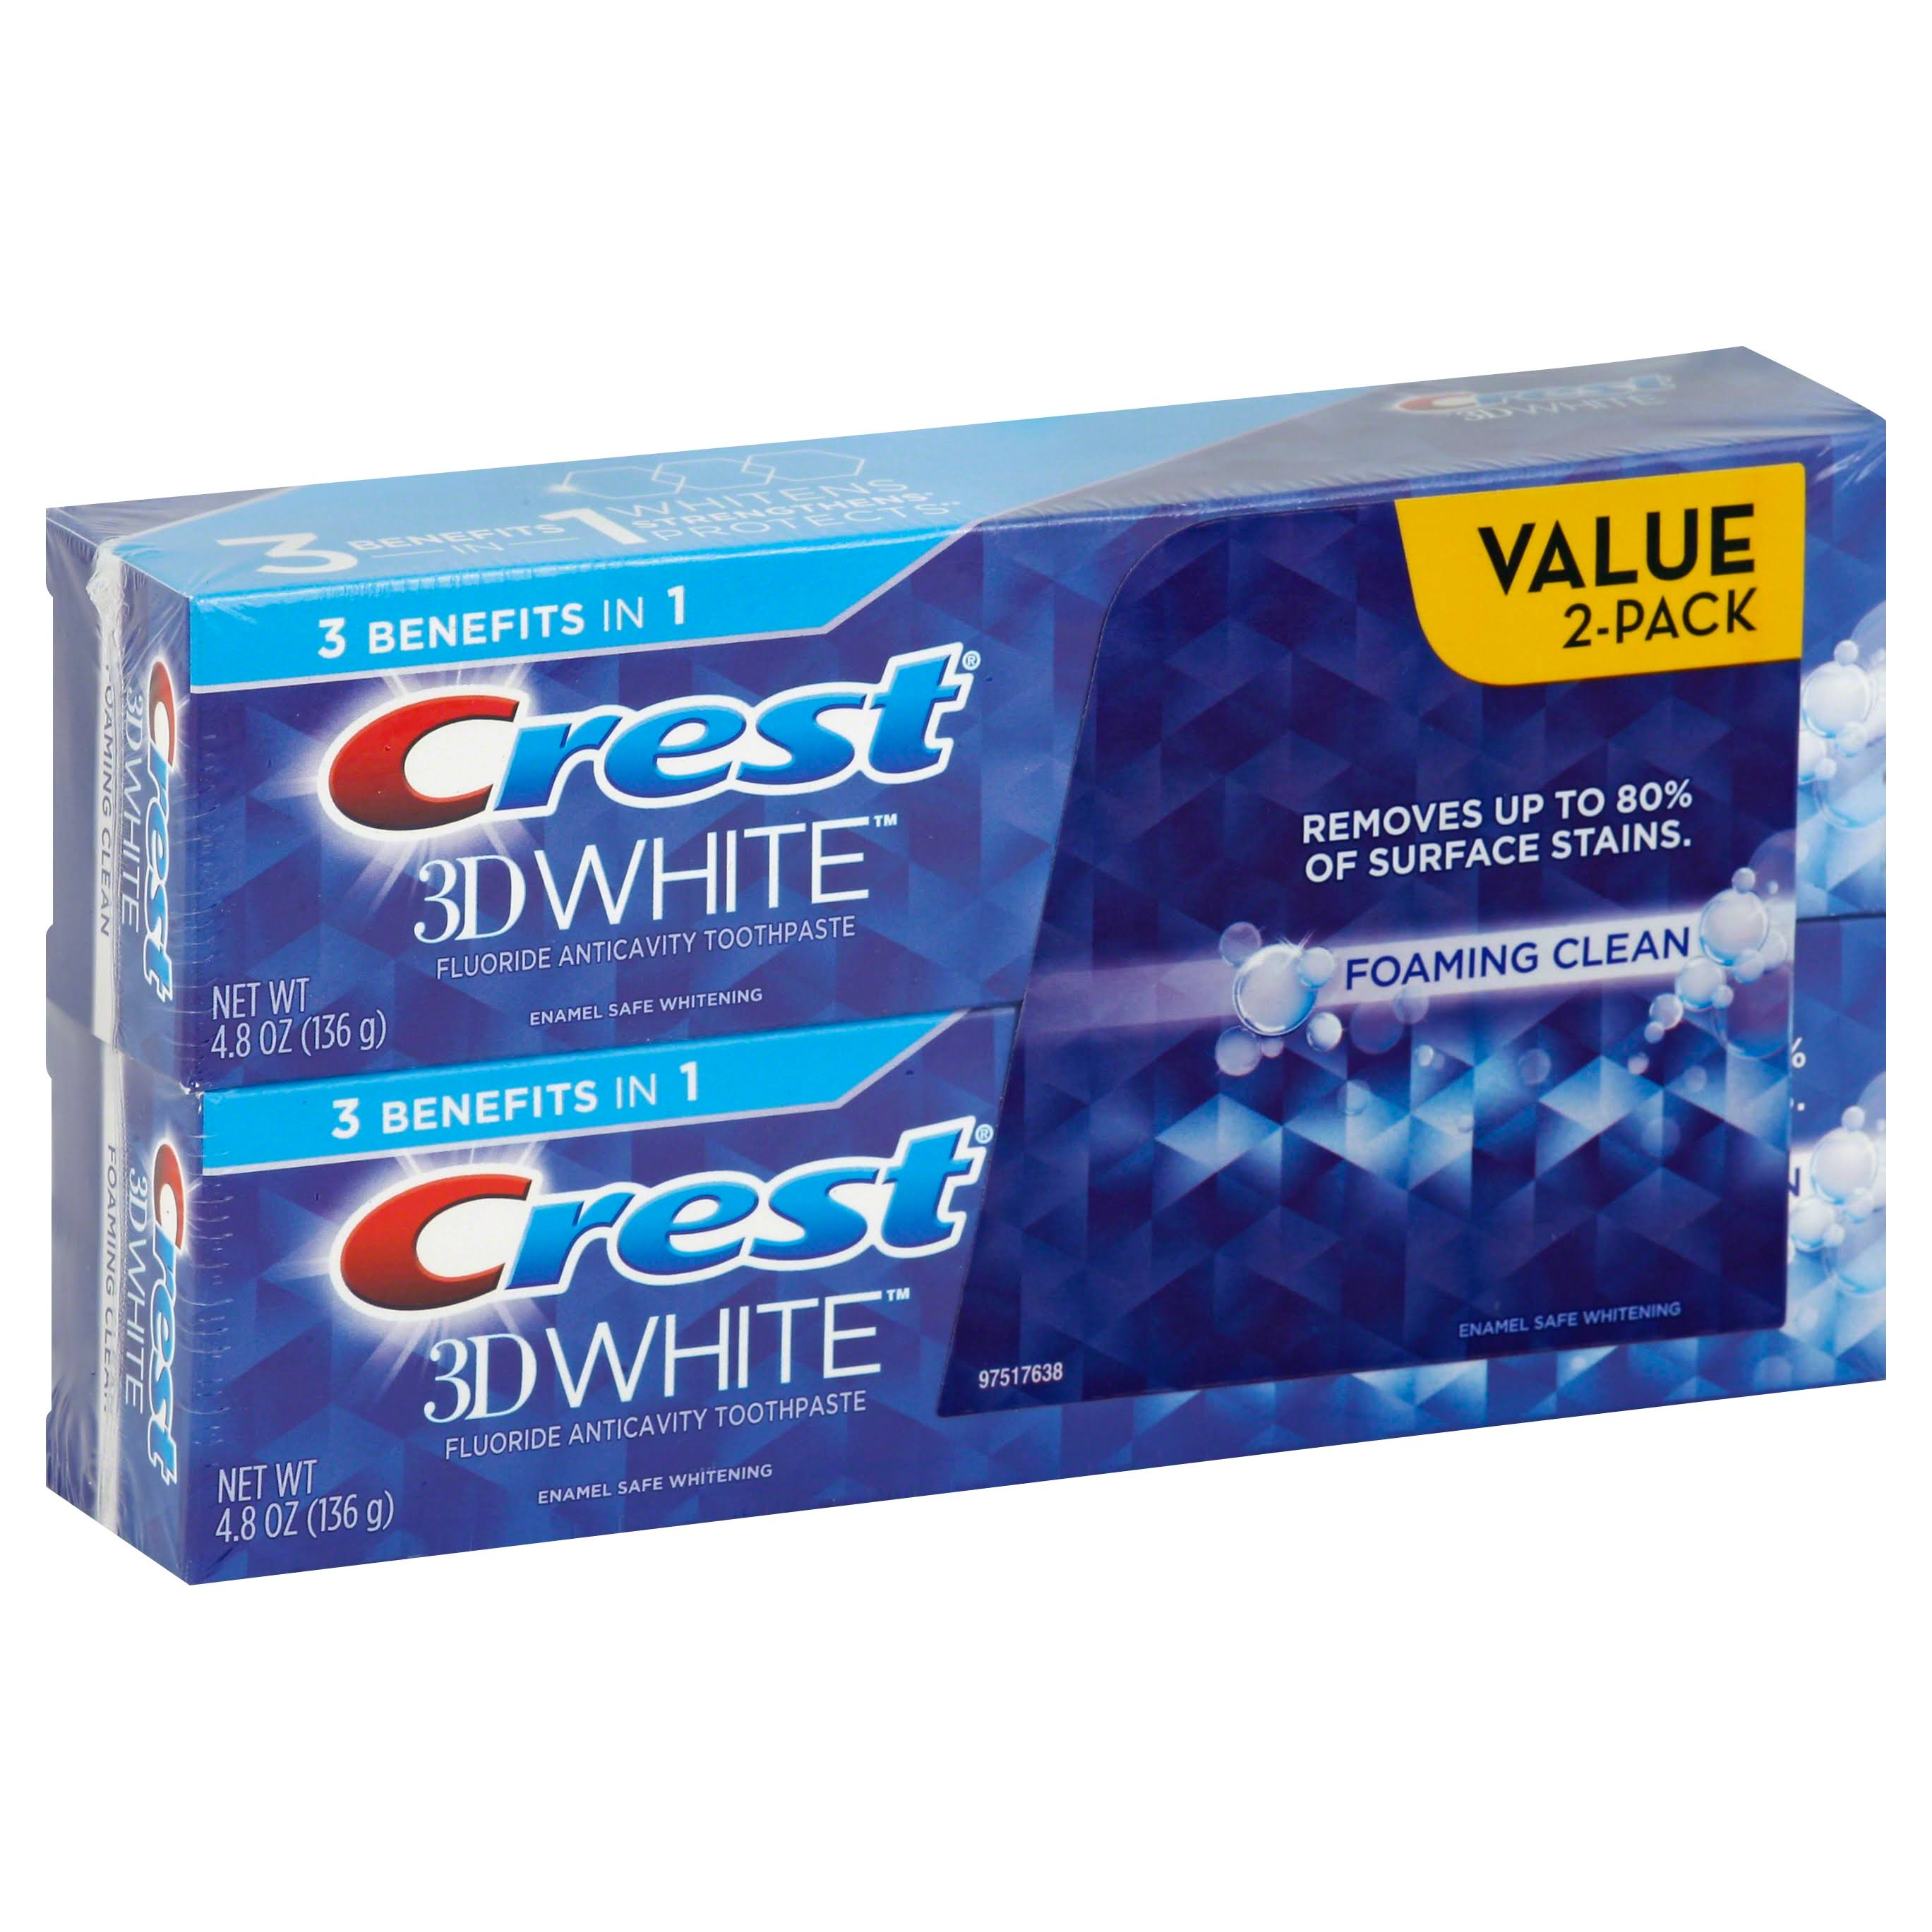 Crest 3D White 3 Benefits in 1 Foaming Clean Fluoride Anticavity Toothpaste - 4.8oz, 2ct